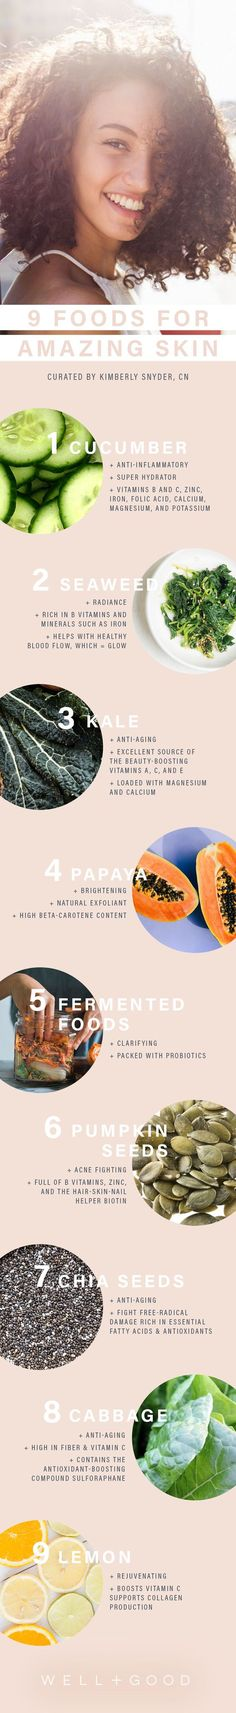 9 foods for amazing skin